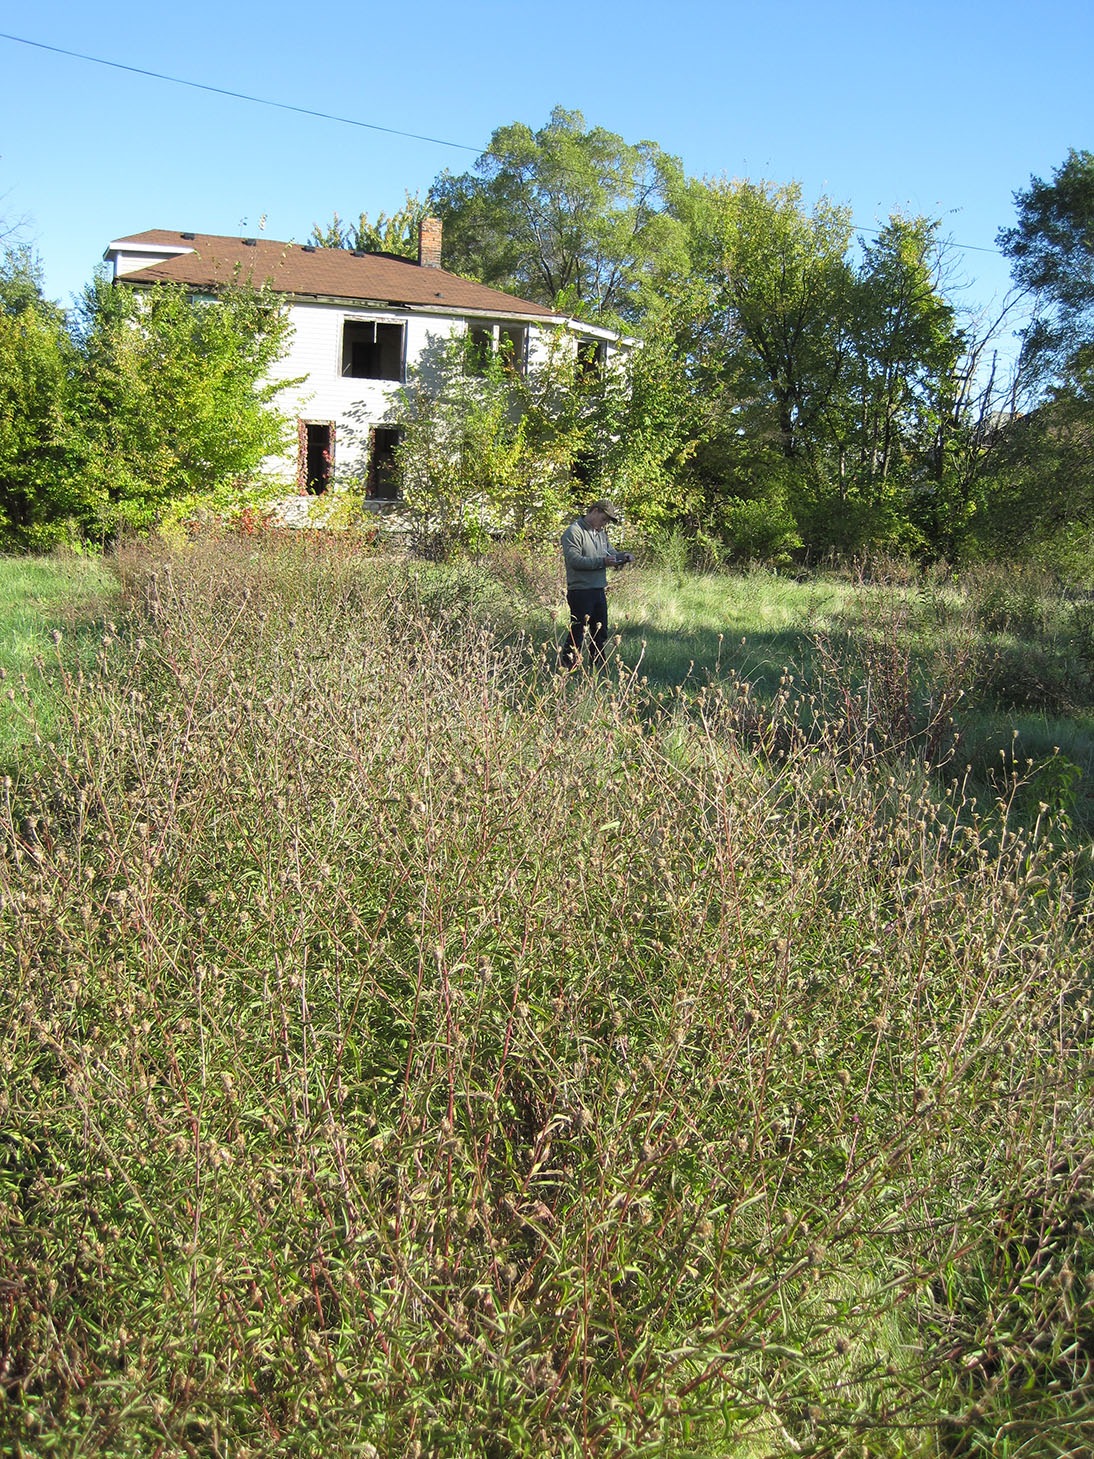 U-M researcher Ben Connor Barrie collecting data about the plants growing on a vacant lot next to an abandoned home in Detroit. Image credit: Daniel Katz